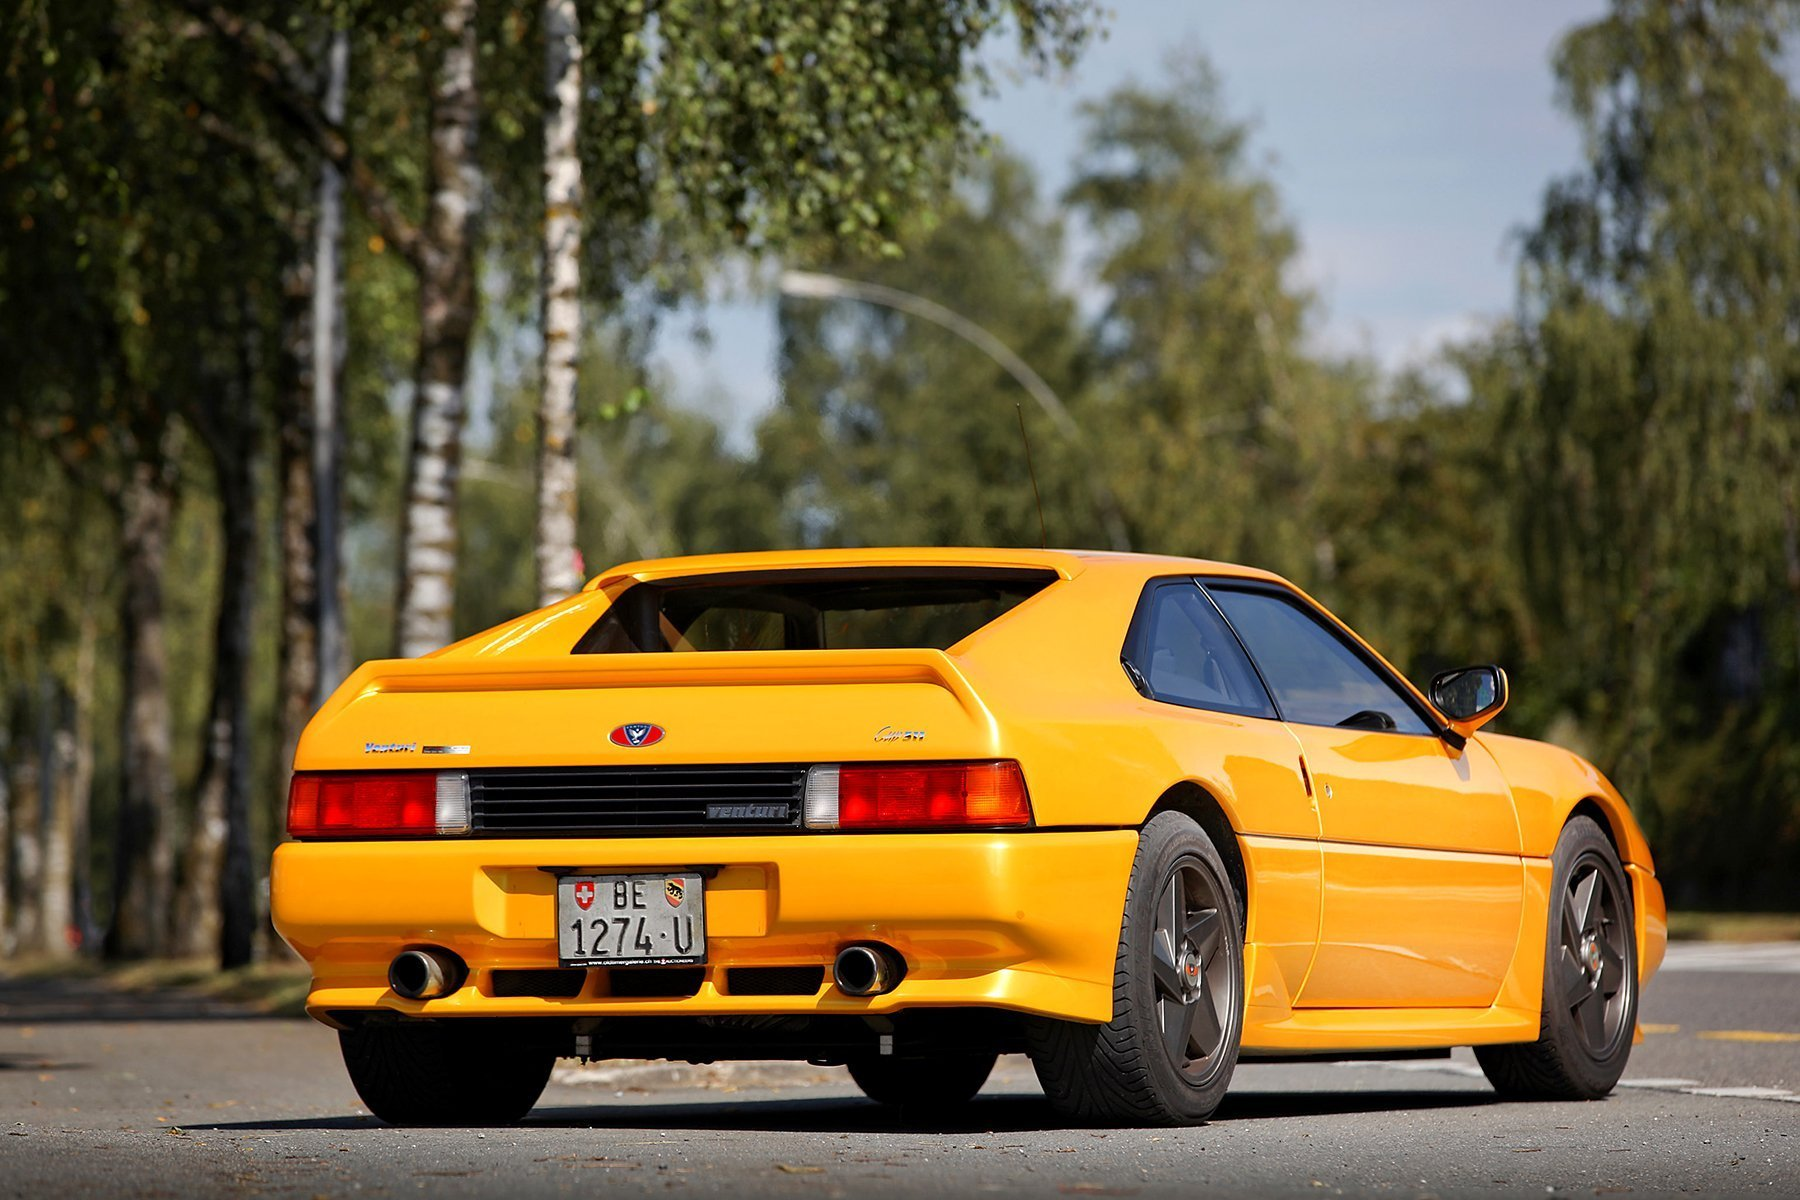 New Venturi Coupe 260 Apc Cars 1990 Wallpaper 1800X1200 On This Month